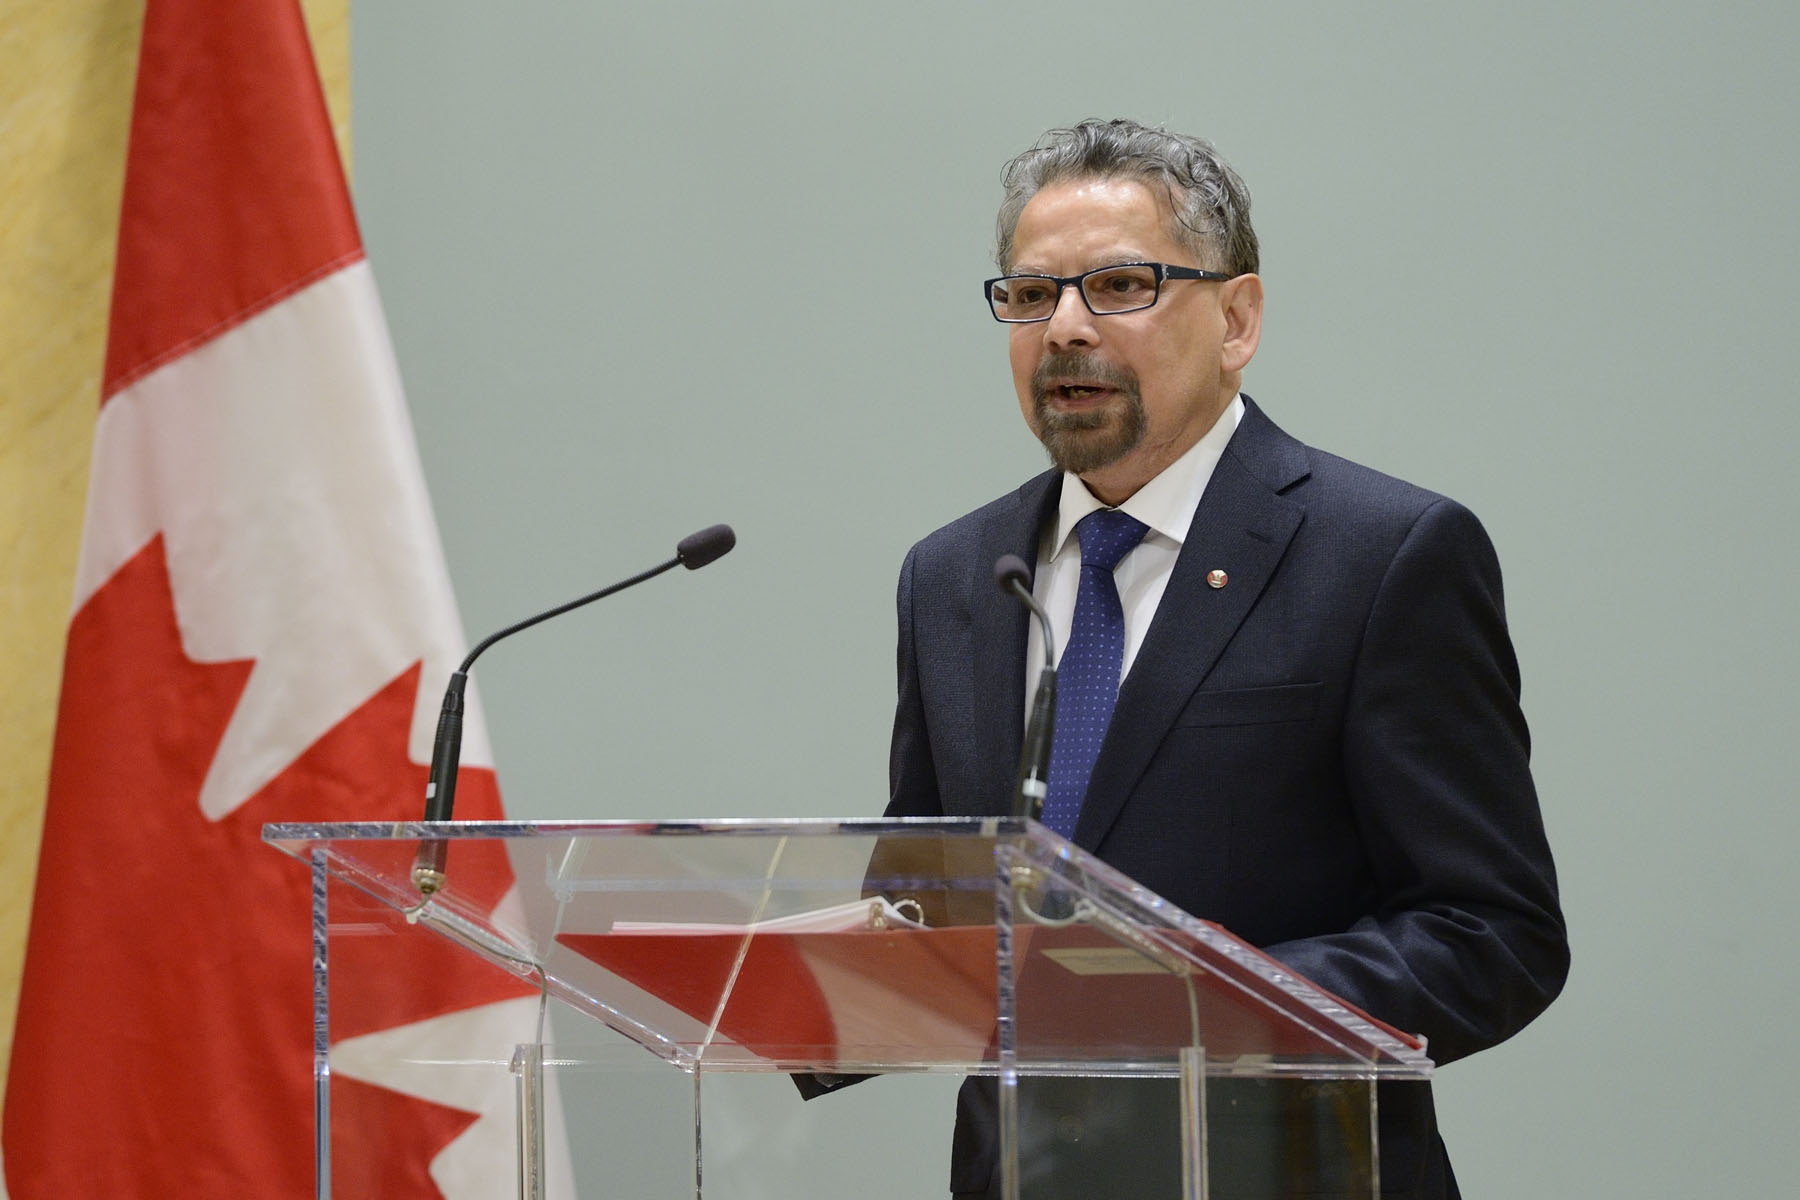 Dr. B. Mario PINTO, President of NSERC delivered remarks and introduced each of the recipients.